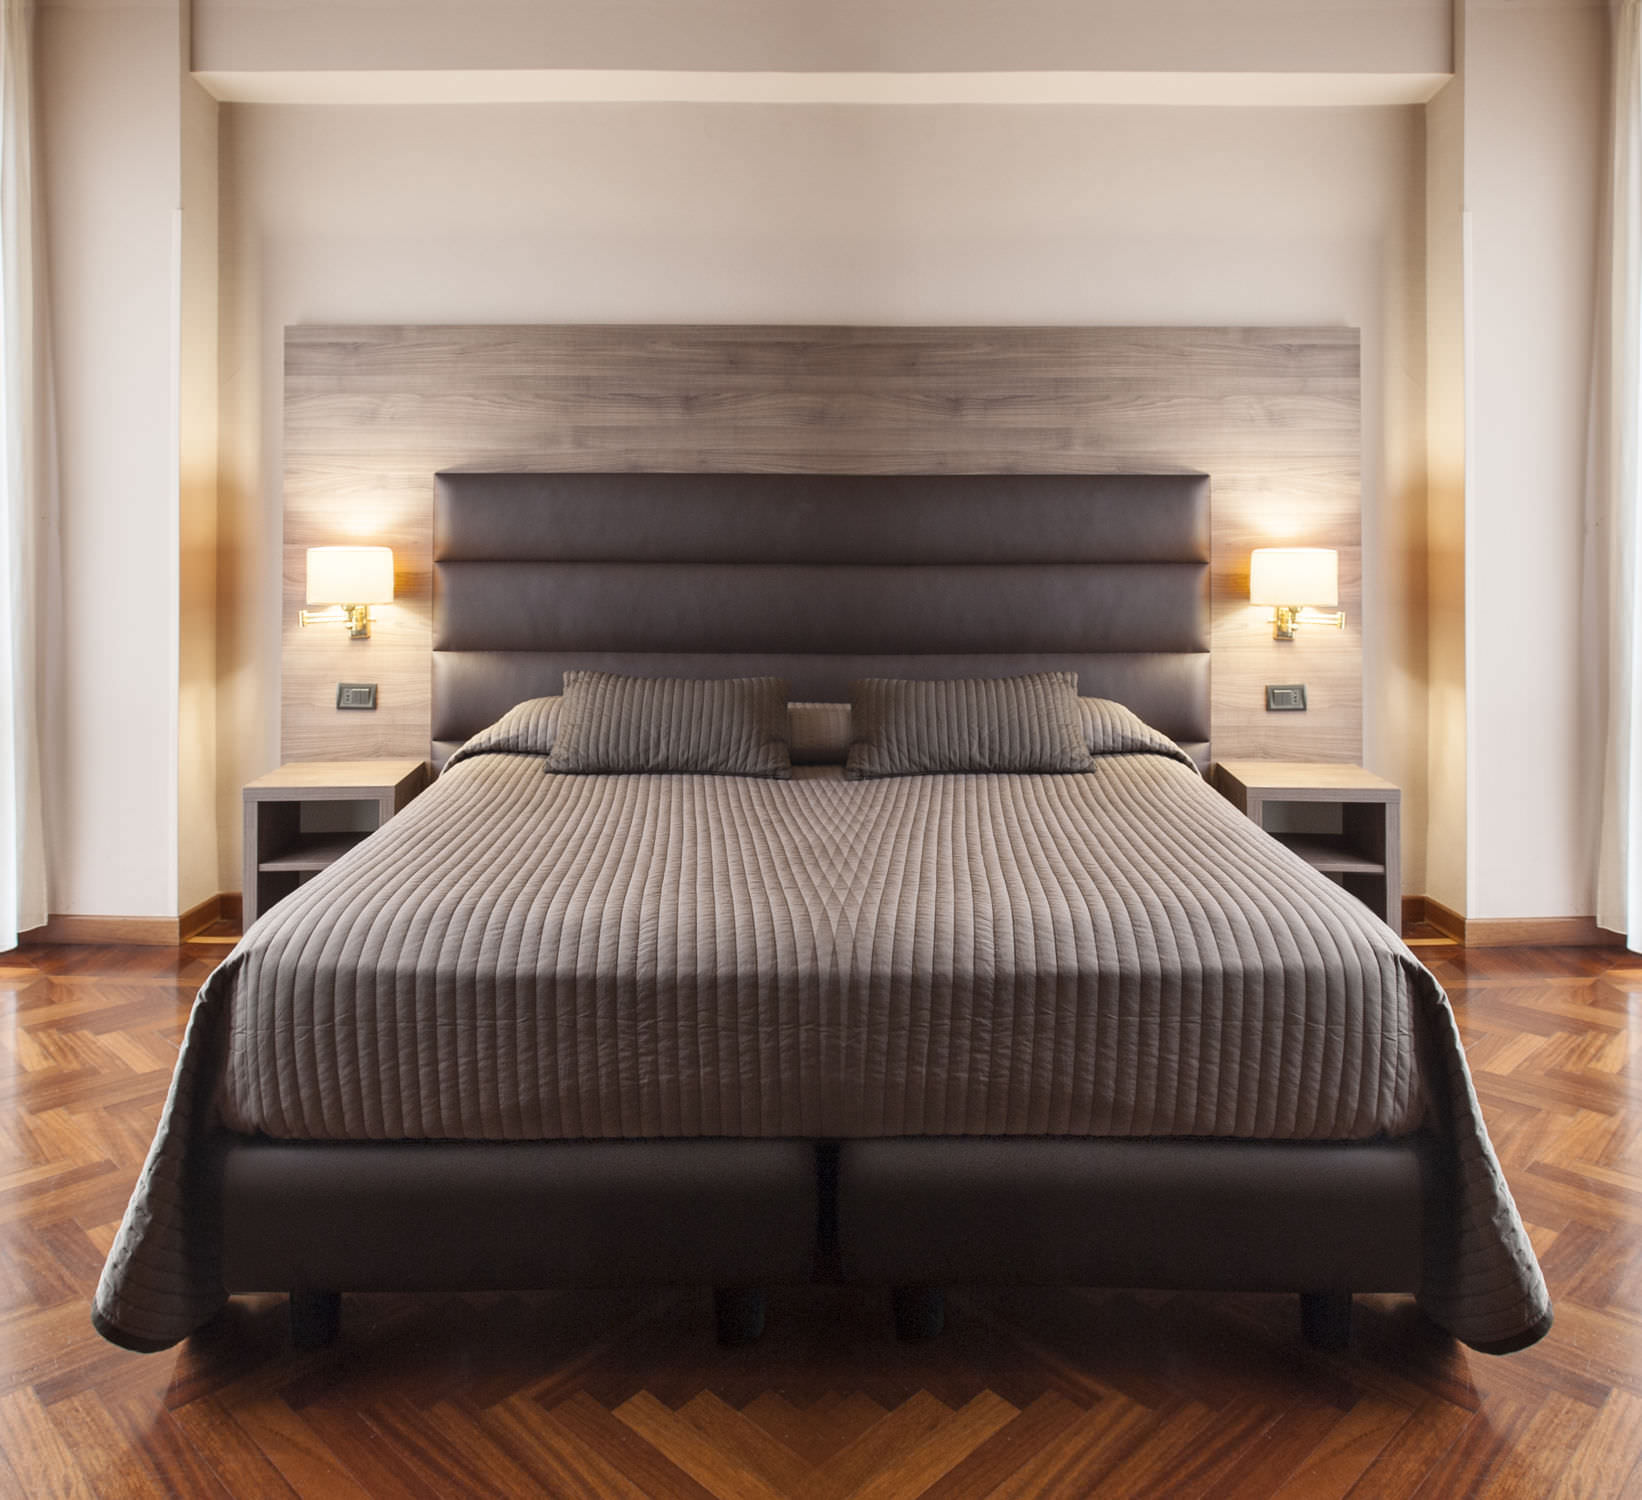 shapes home queen headboard com hb girls white fabric diamond of tufted double contemporary with linen baxton size ideas hotel and sale king studio mars twin princess headboards speakers the grey intended bedhead wood depot modern full traditional for metal dark